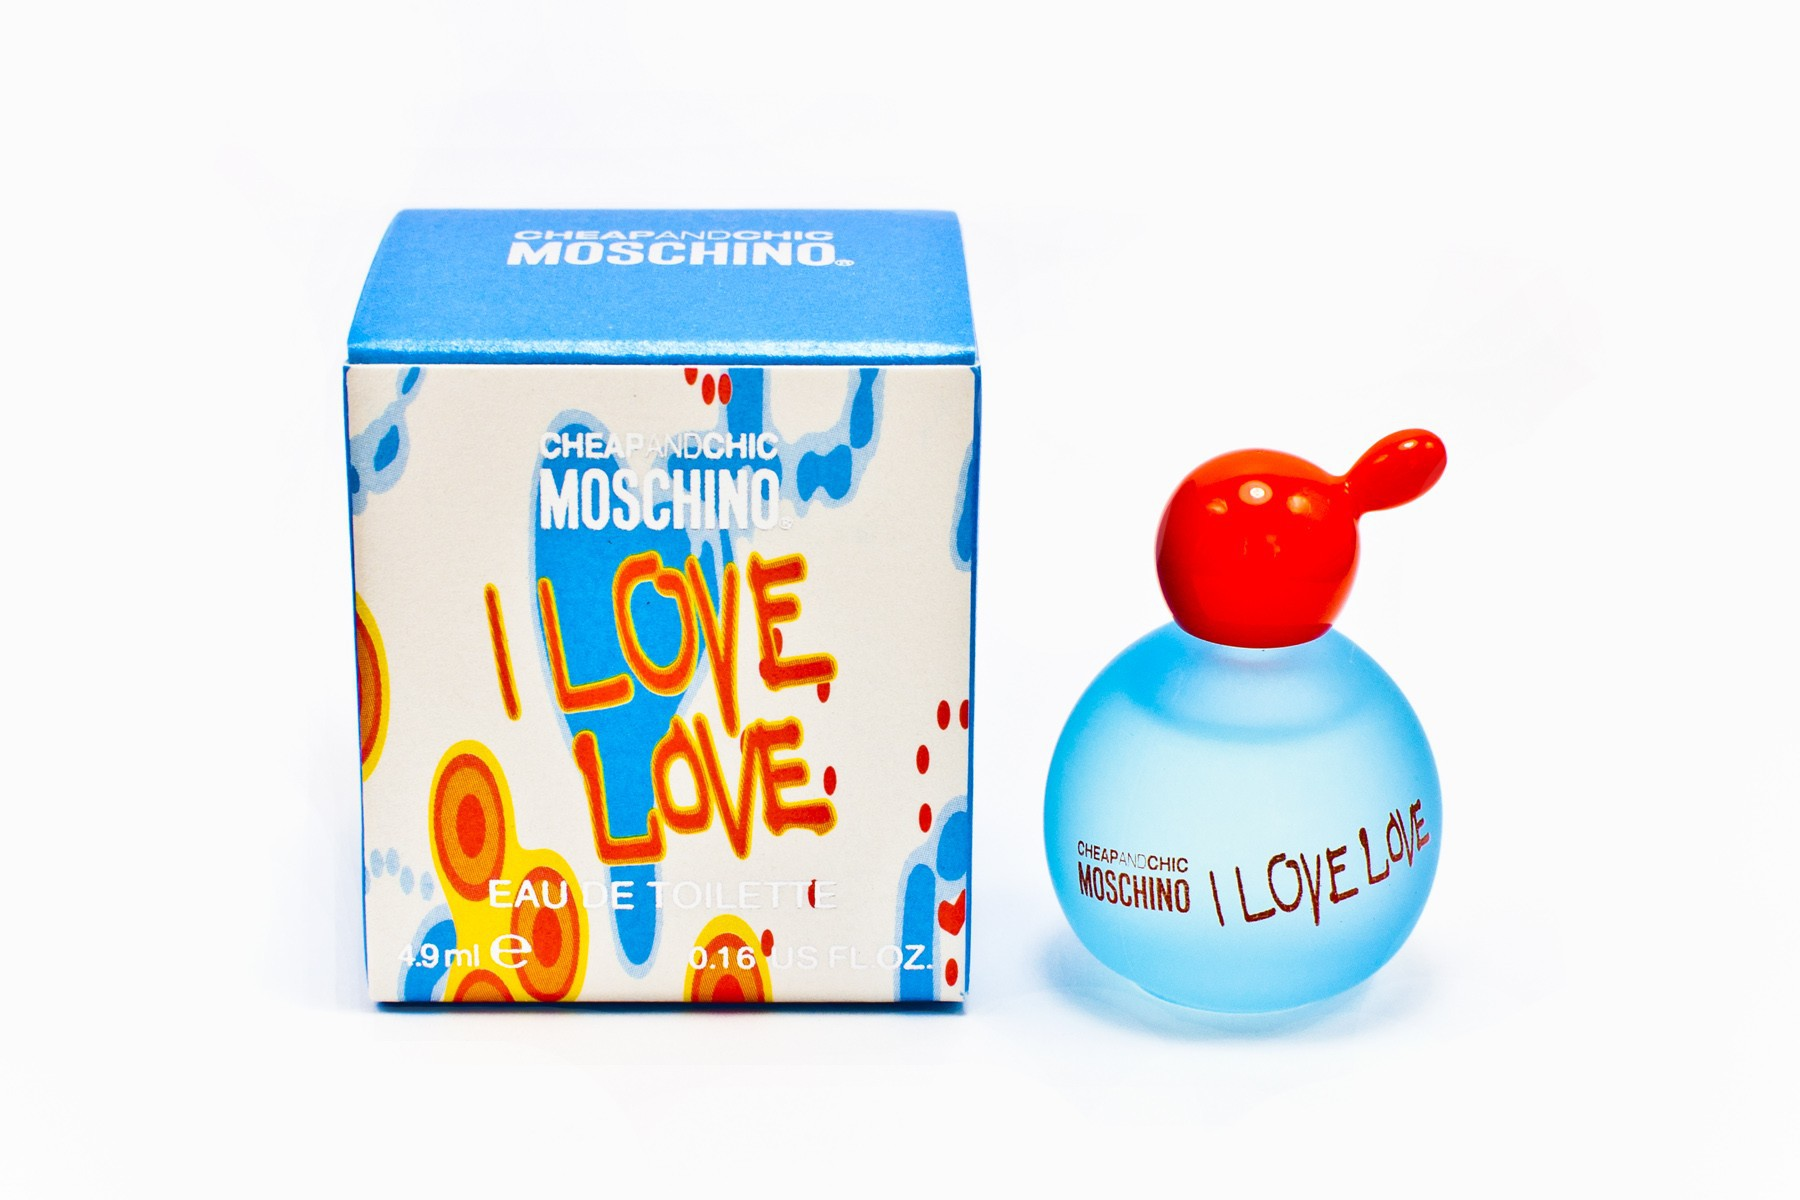 Moschino Cheap And Chic I Love Love аромат для женщин